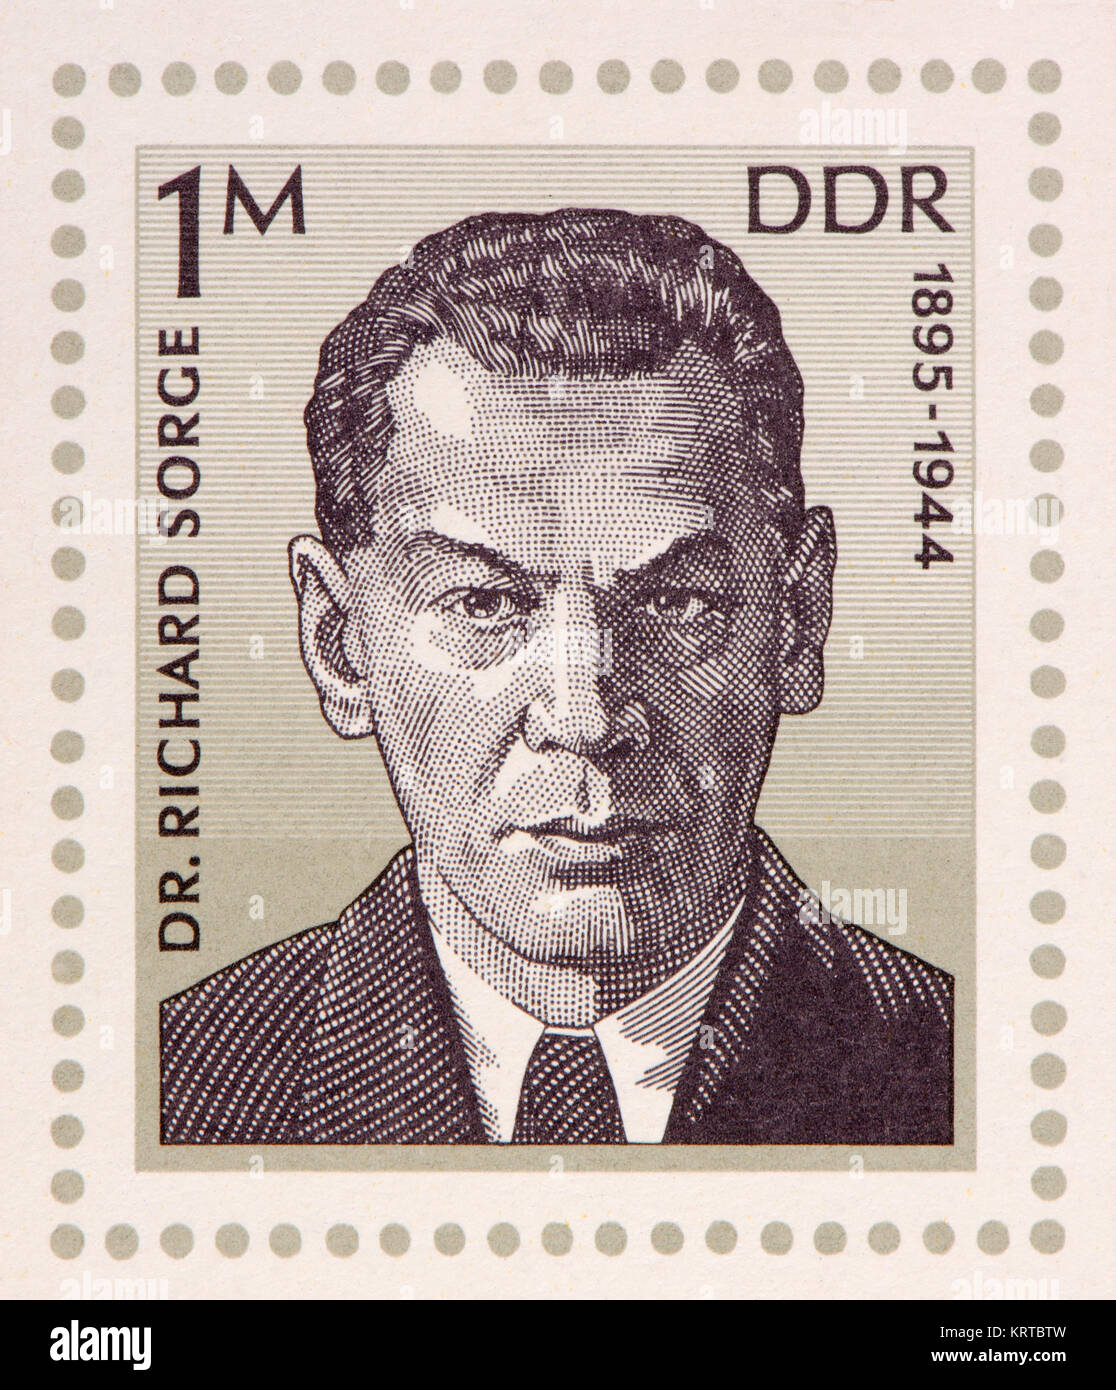 East German (DDR) postage stamp (1976) on a minisheet: Richard Sorge (1895 – 1944) Soviet military intelligence - Stock Image